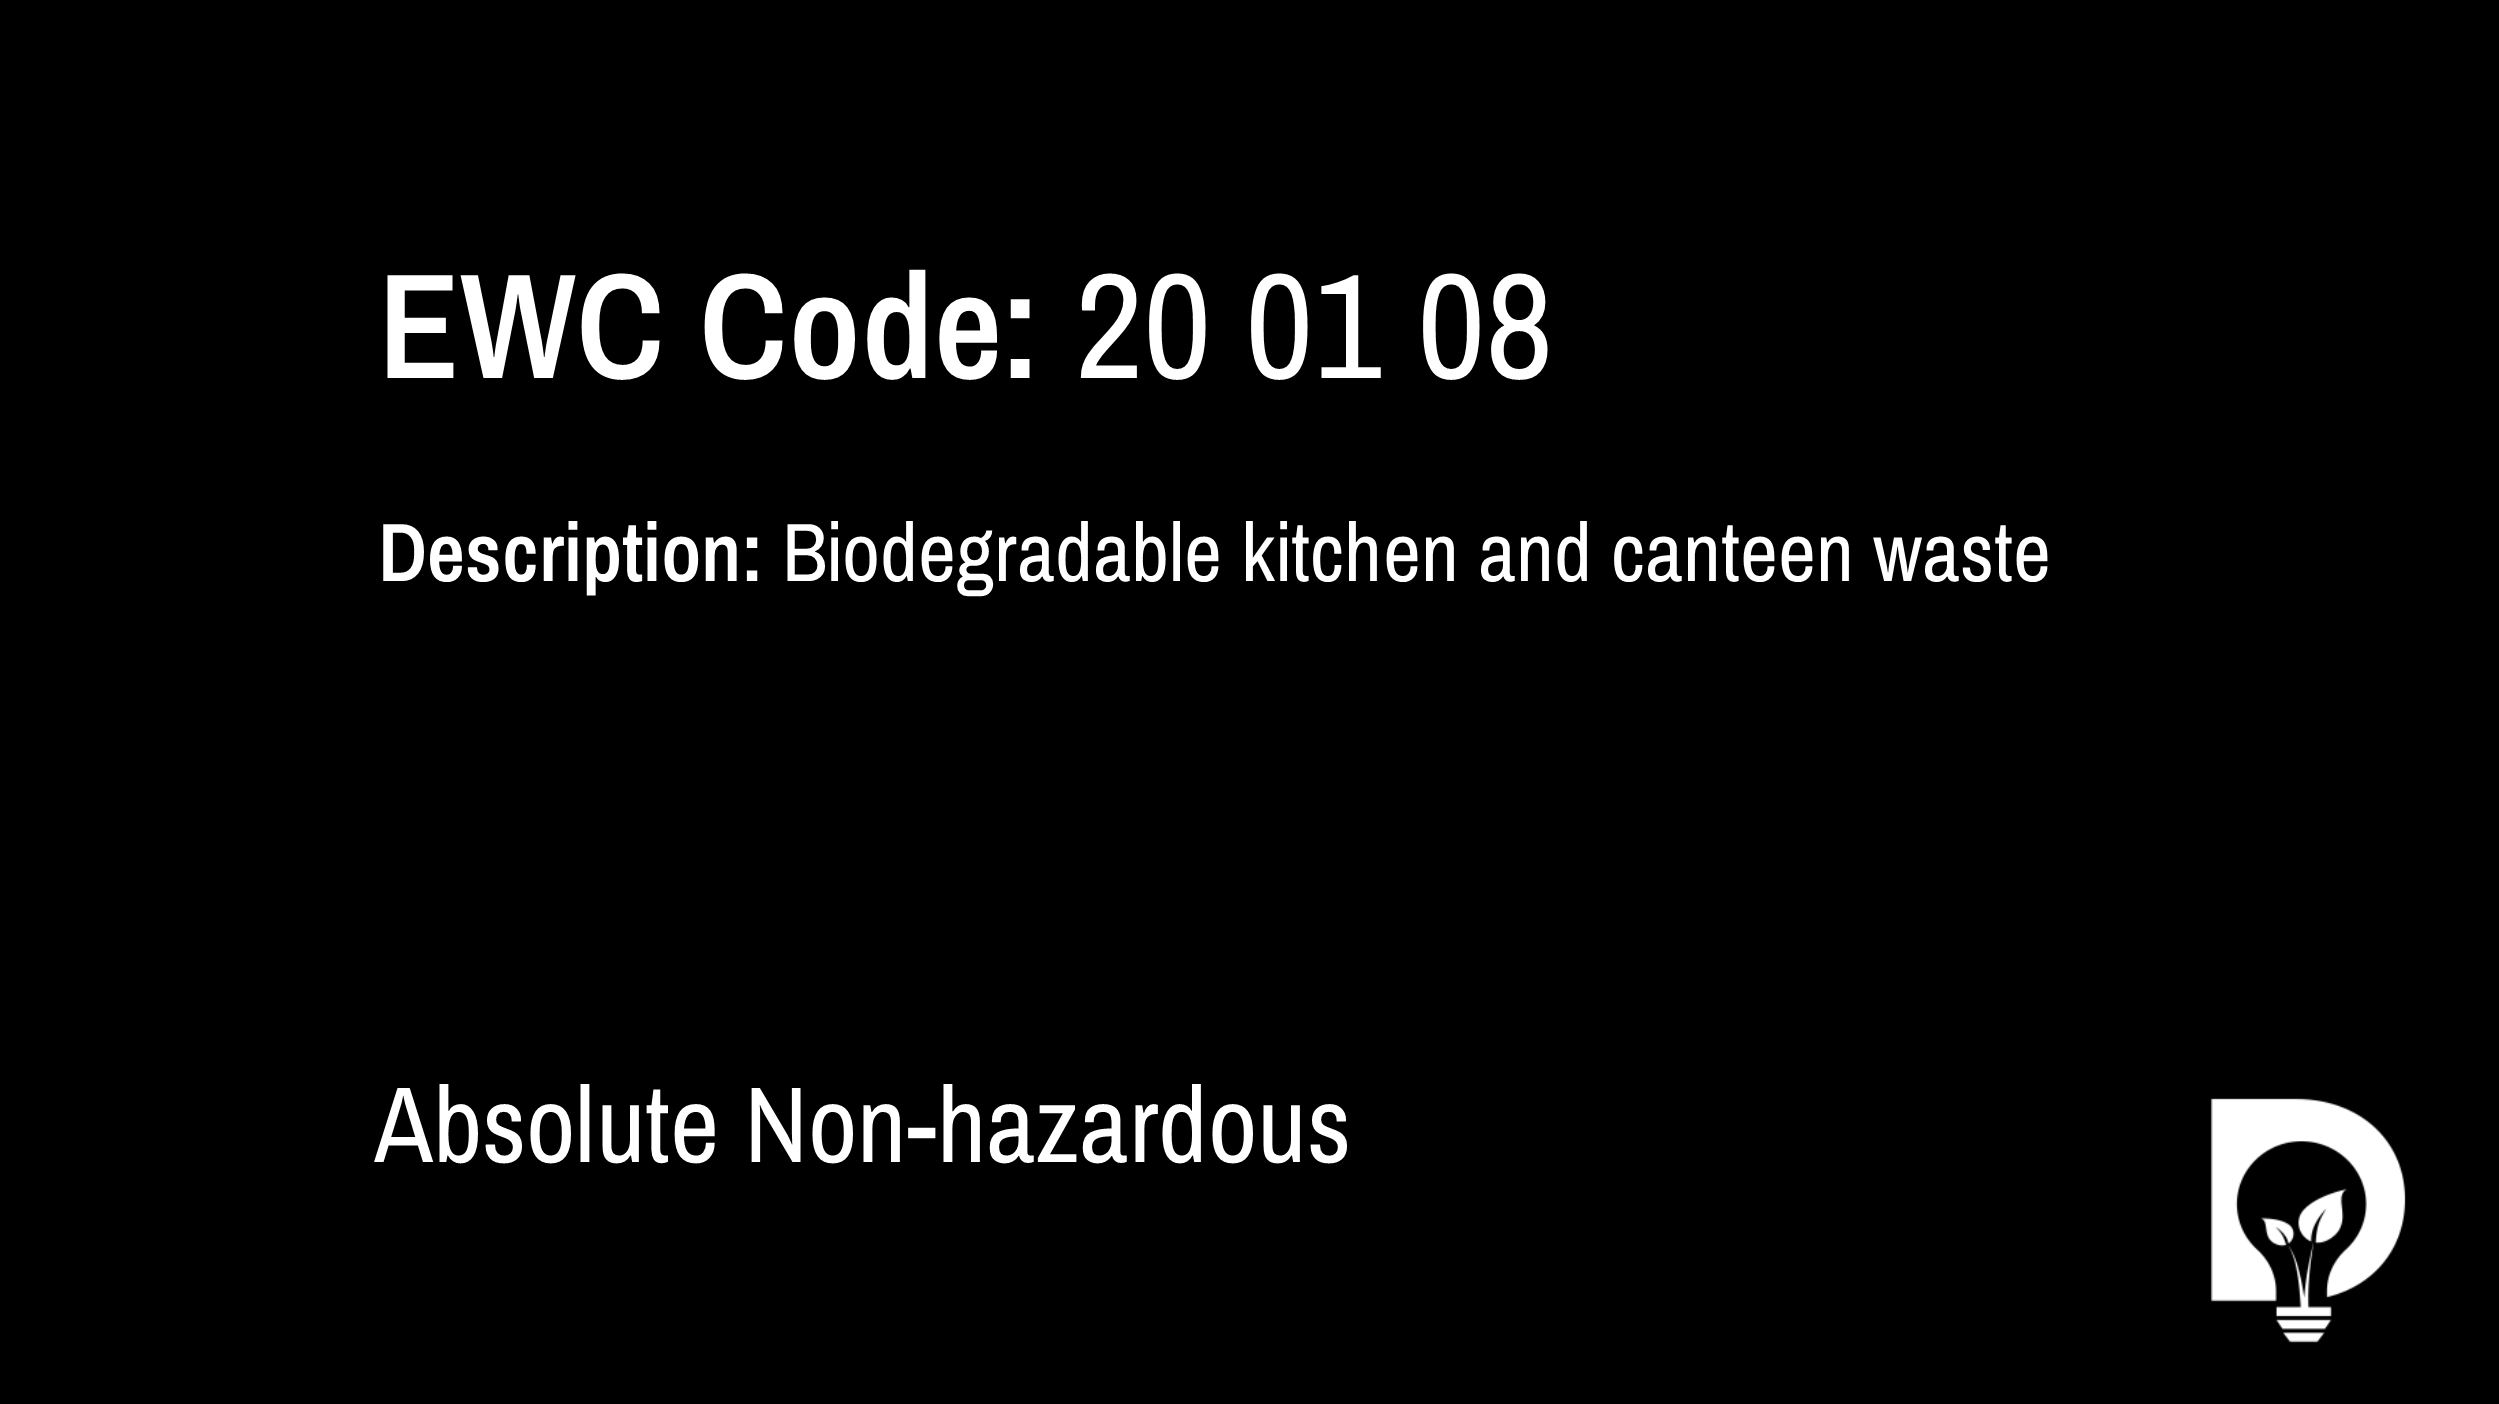 EWC Code: 20 01 08 - biodegradable kitchen and canteen waste. Type: Absolute Non-hazardous. Image by Dsposal